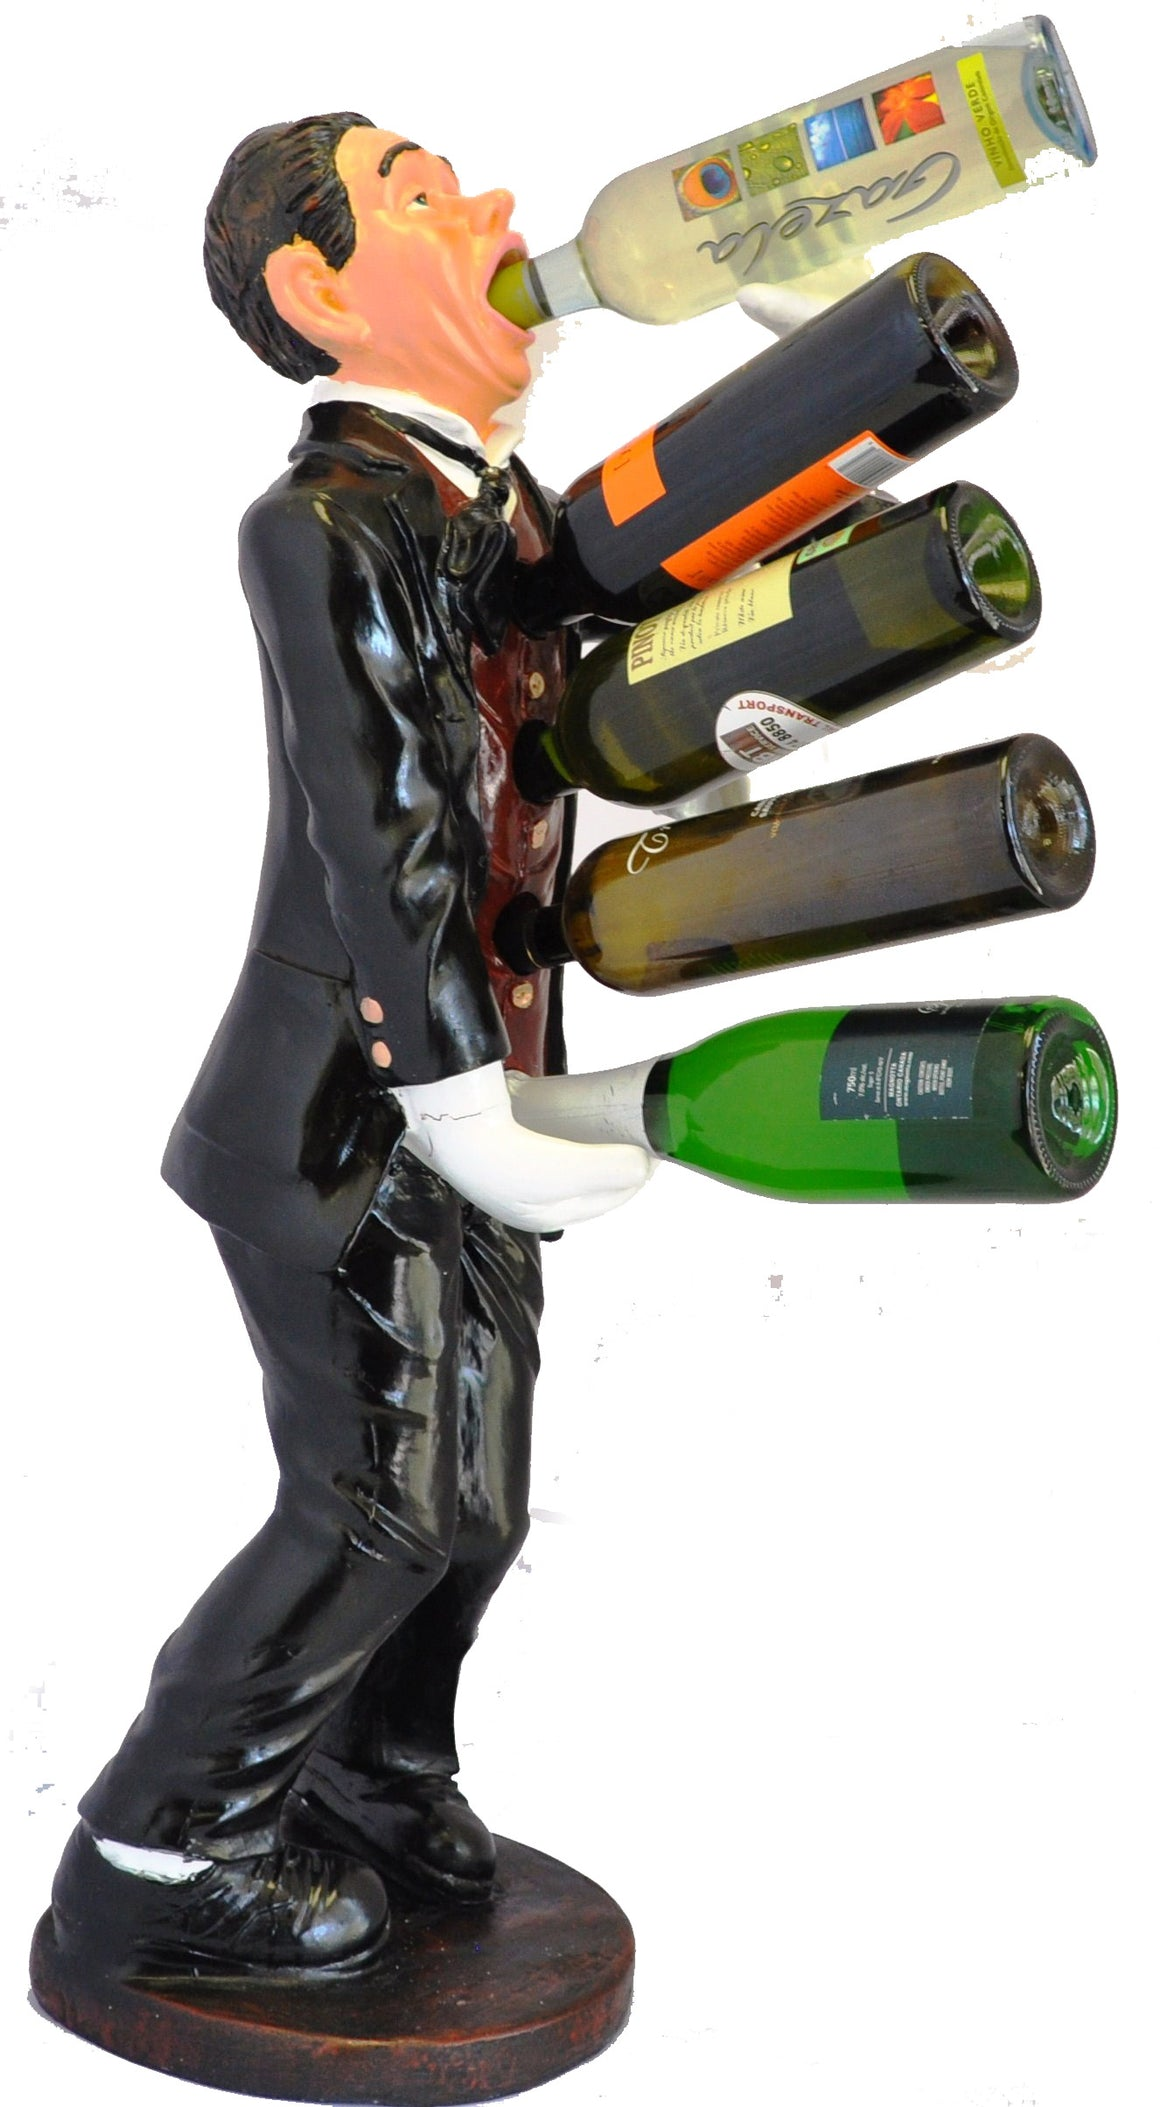 Drinking Waiter Wine Holder - Wine Holders - themayacompany